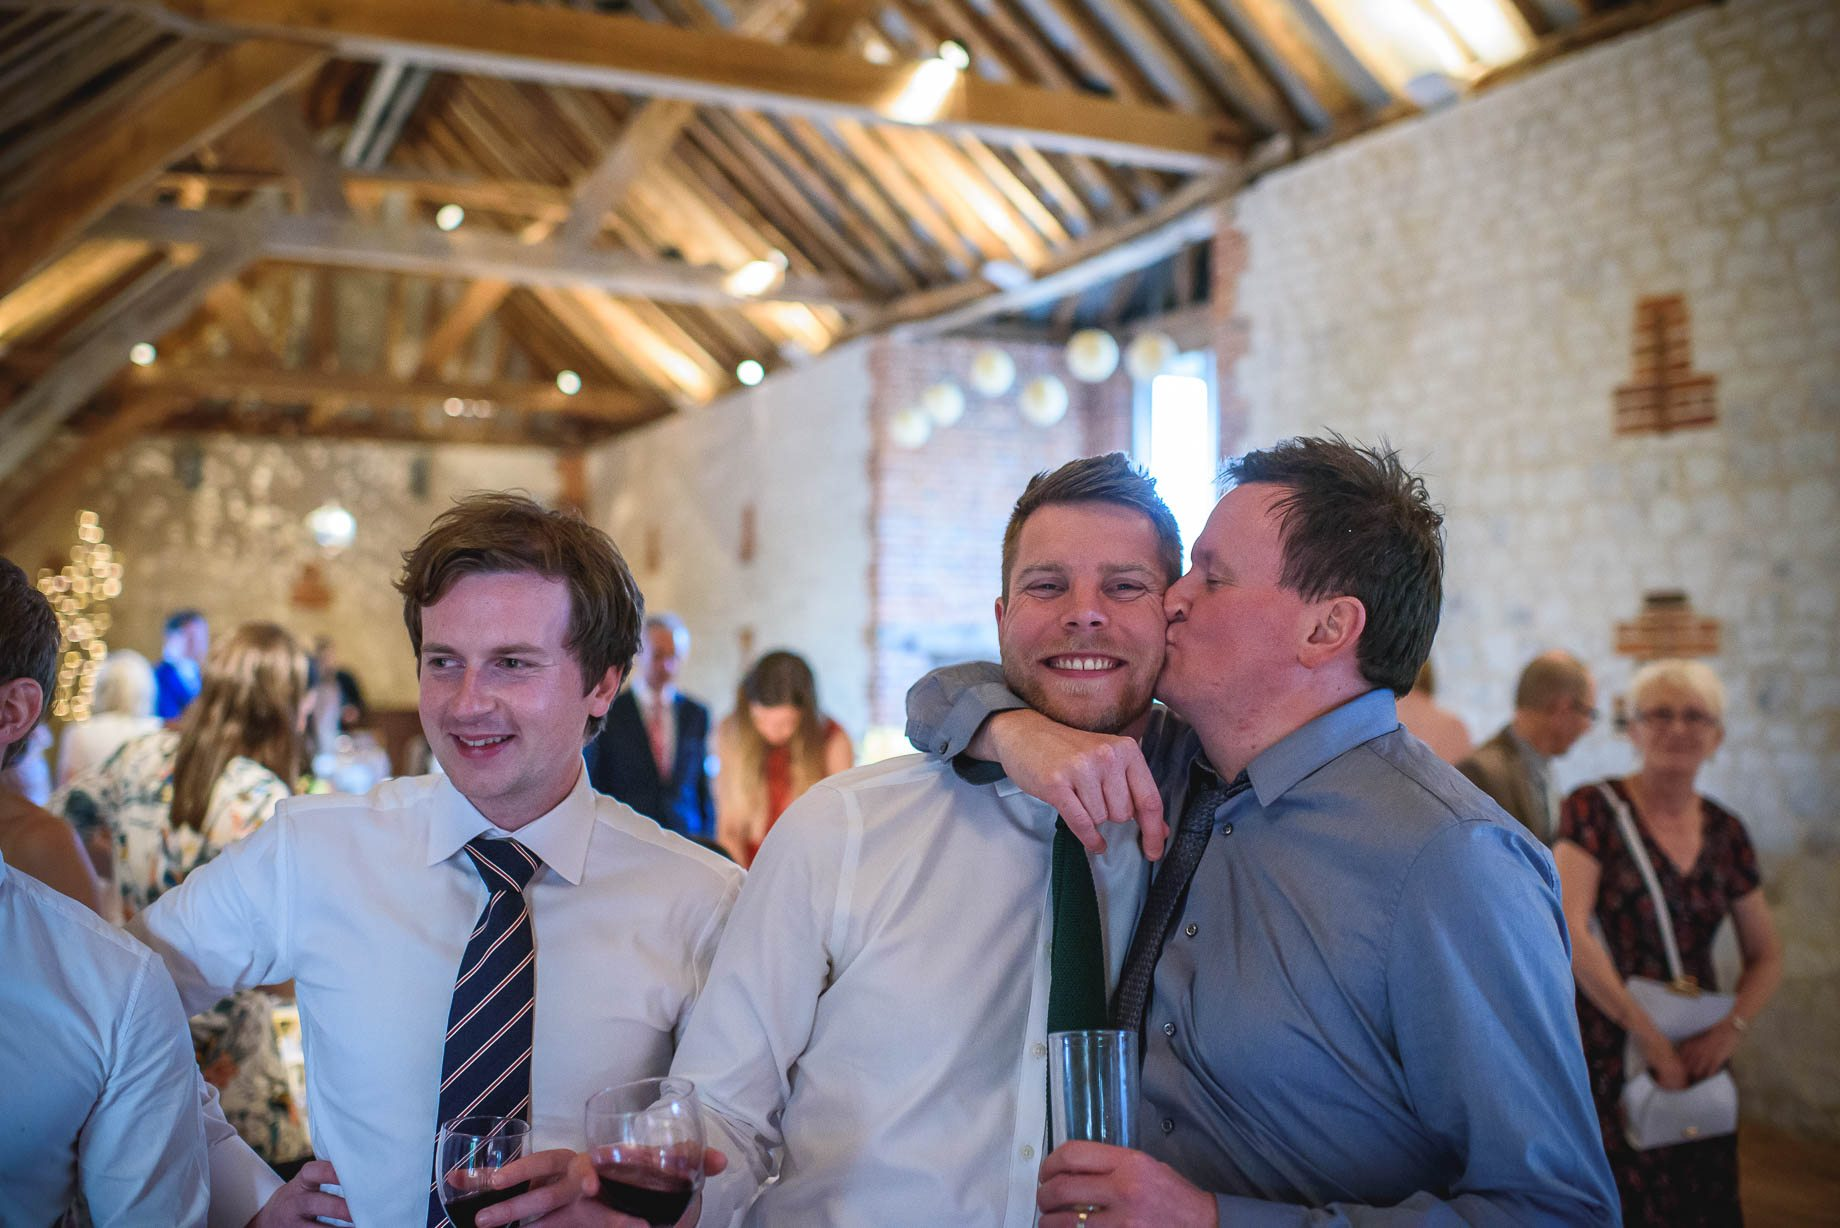 Bury Court Barn wedding photography by Guy Collier - Jo and Jamie (150 of 160)